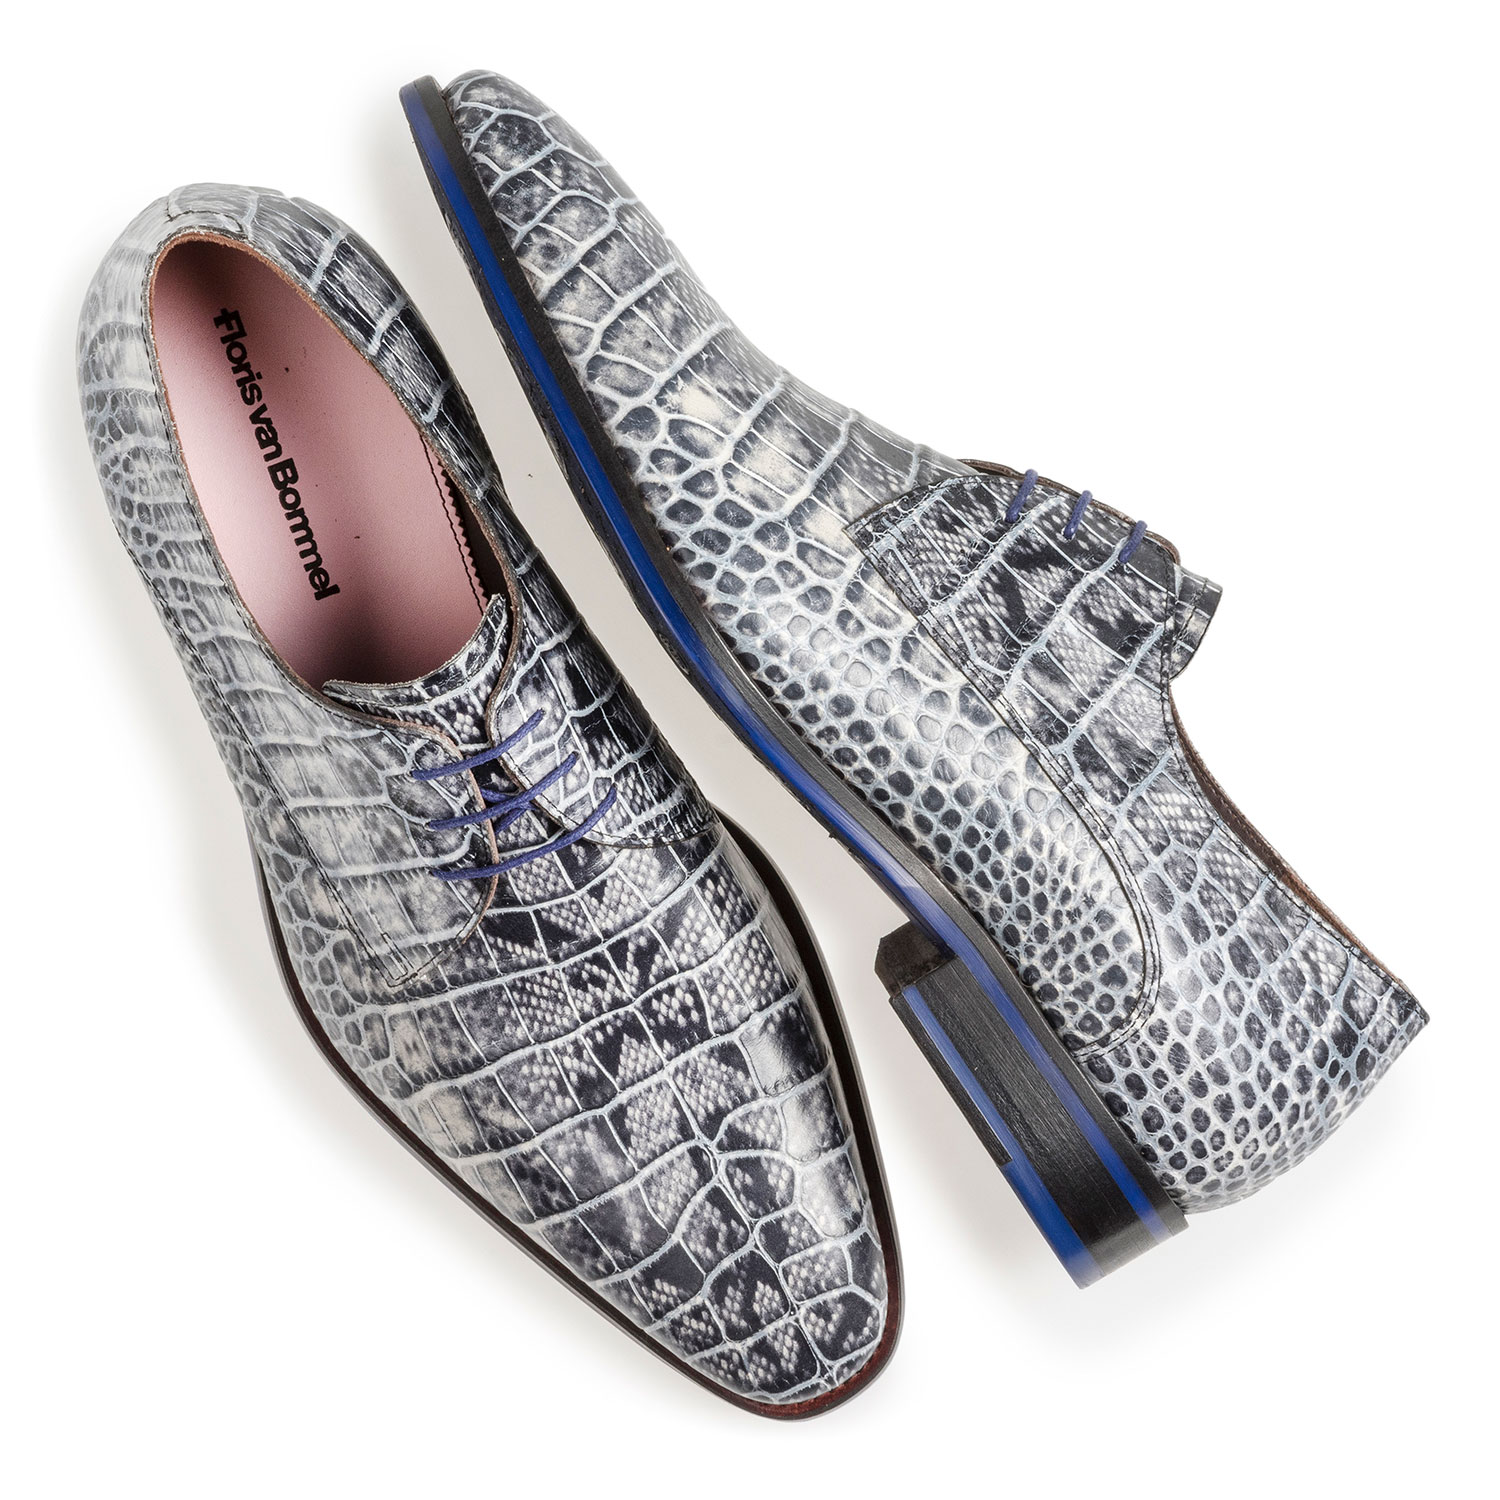 18168/02 - Grey lace shoe with croco print